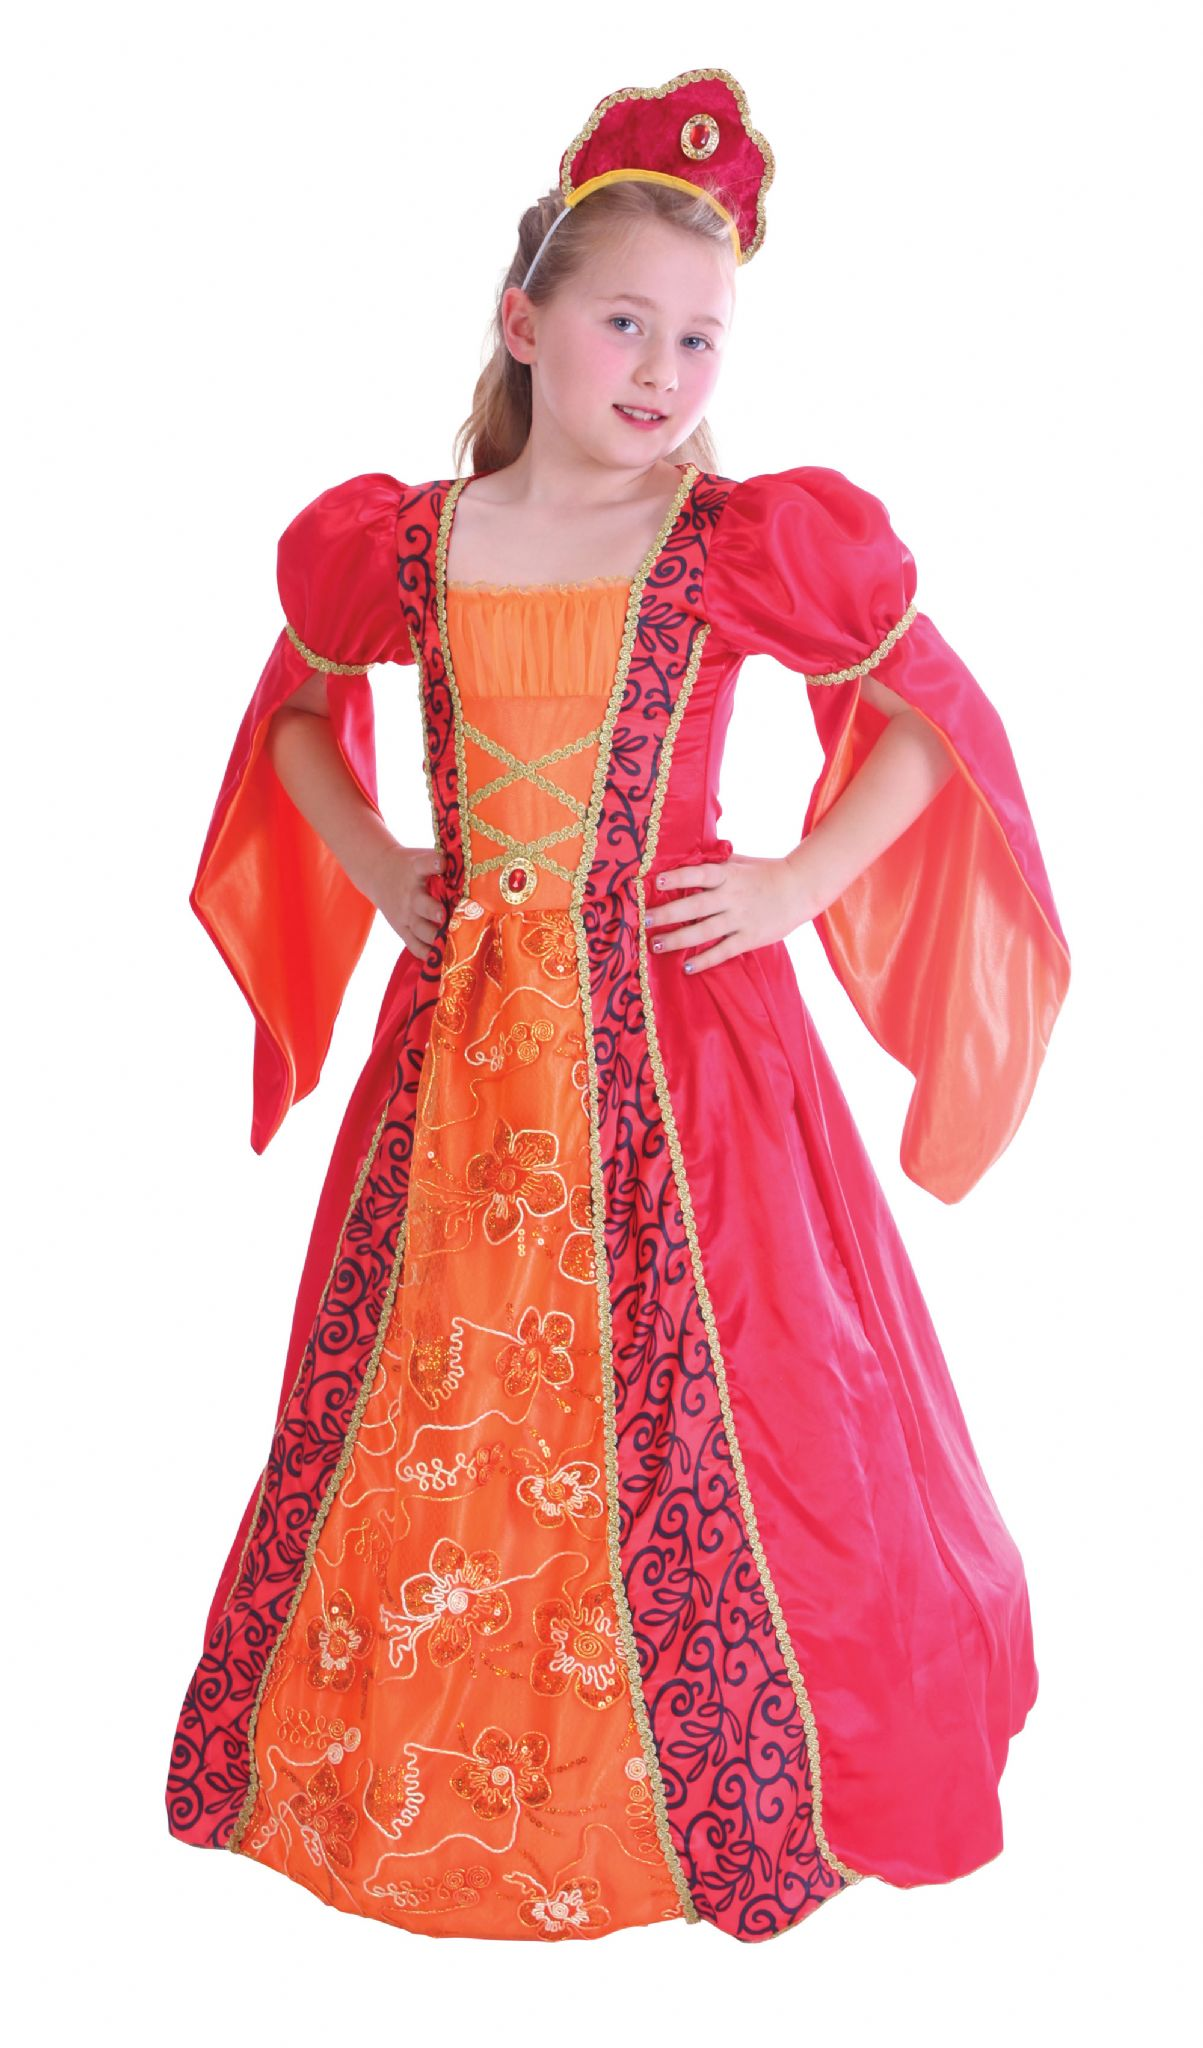 98cb95e05a1 Girls Princess Deluxe Costume Royal Fairytale Beautiful hero Fancy Dress  Outfit